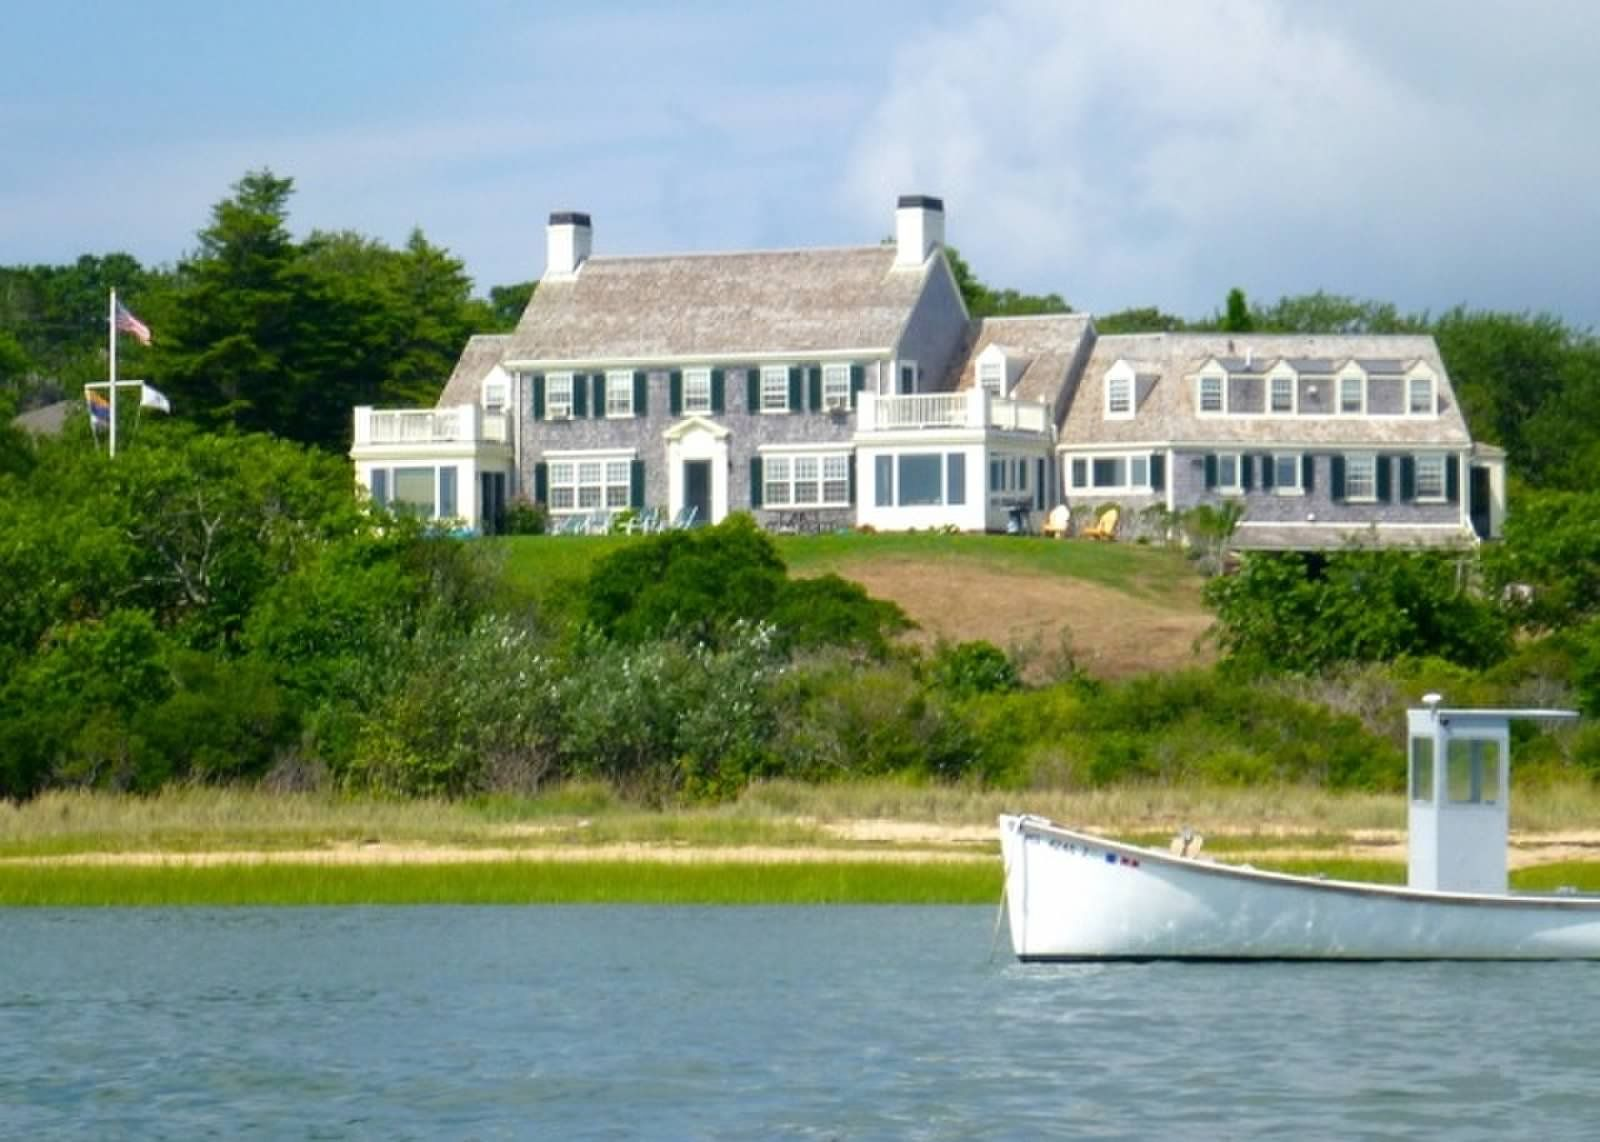 The turntide estate chatham ma wedding venue pinterest chatham vacation rental home in cape cod ma short path on property 50 yards junglespirit Gallery